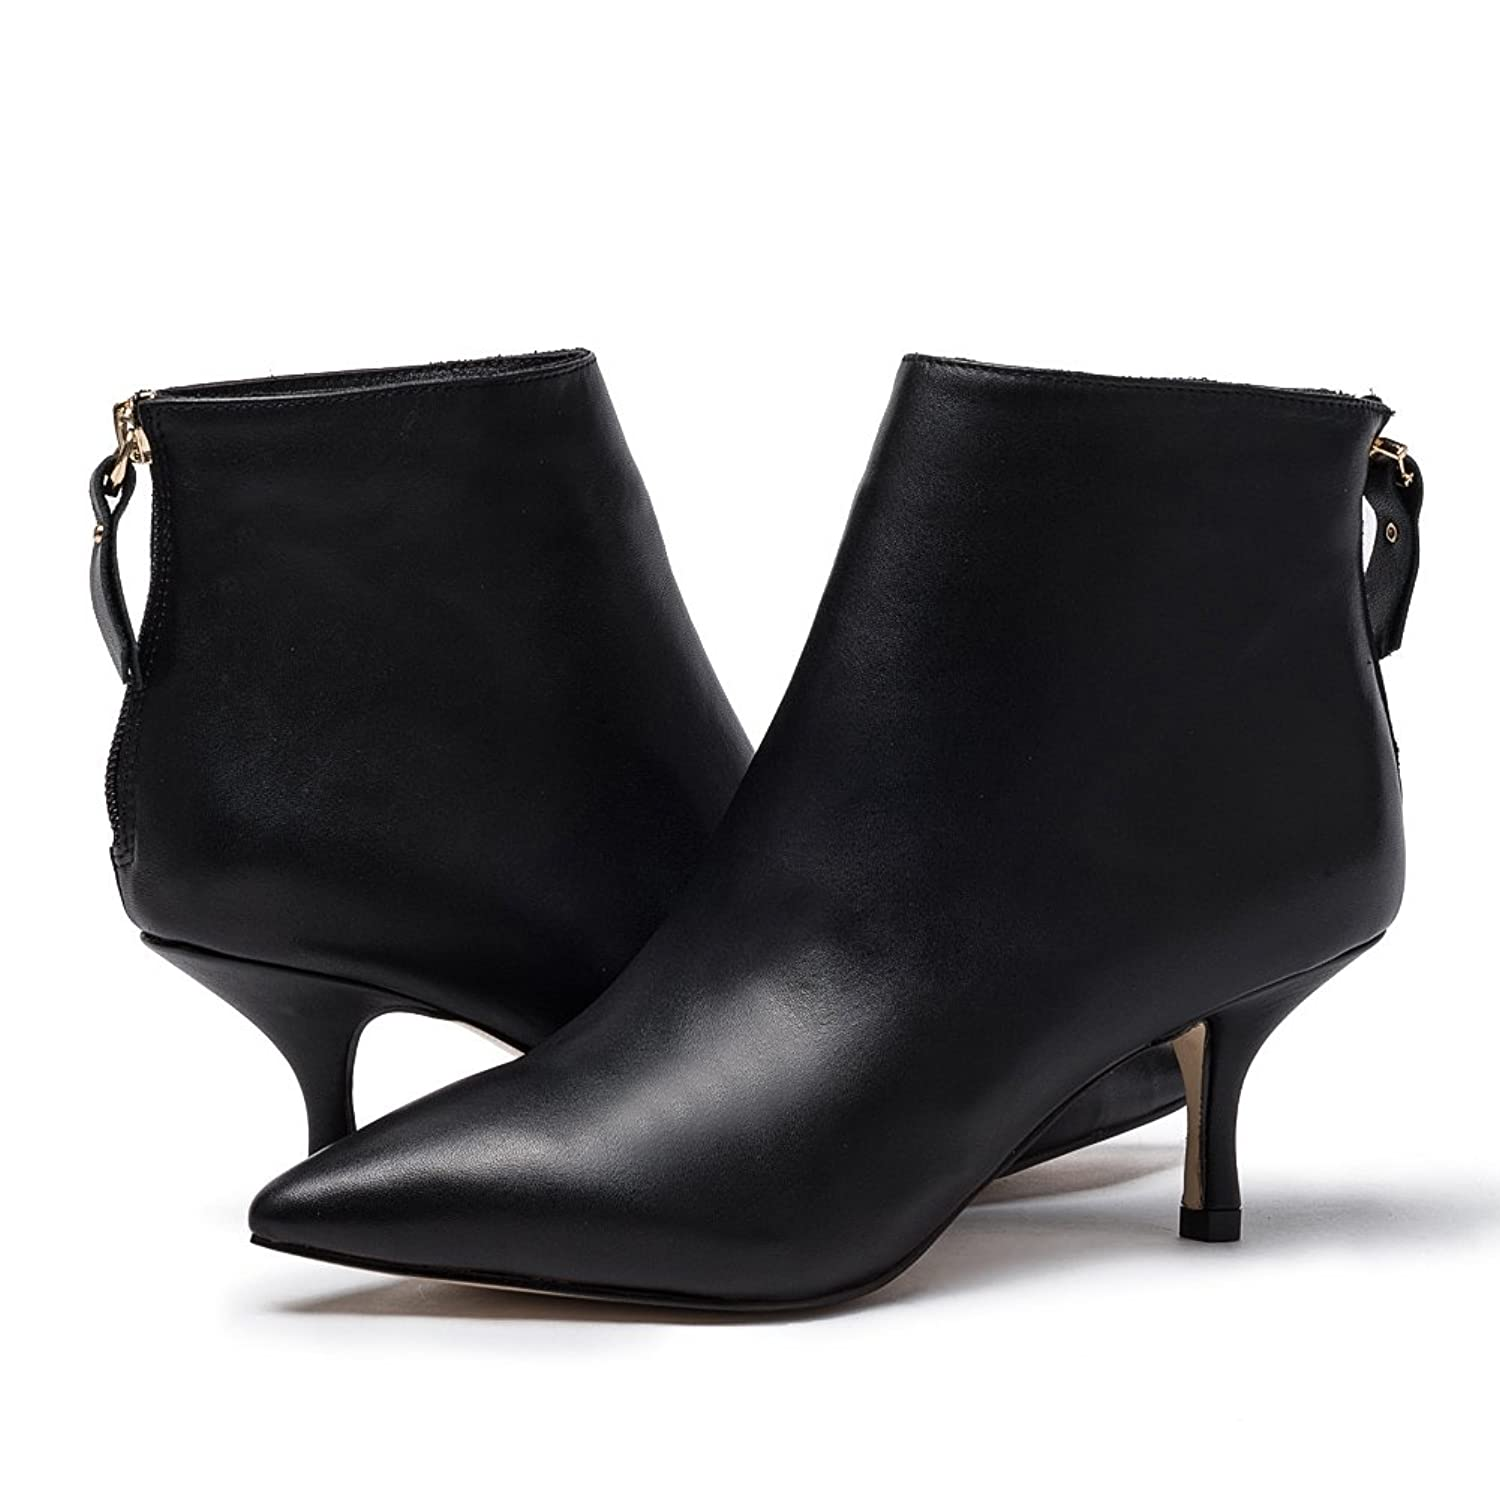 Women's Leather Ankle Boots Sexy Pointed Toe Kitten-heel Zip Shoes Big Size:  Amazon.ca: Shoes & Handbags